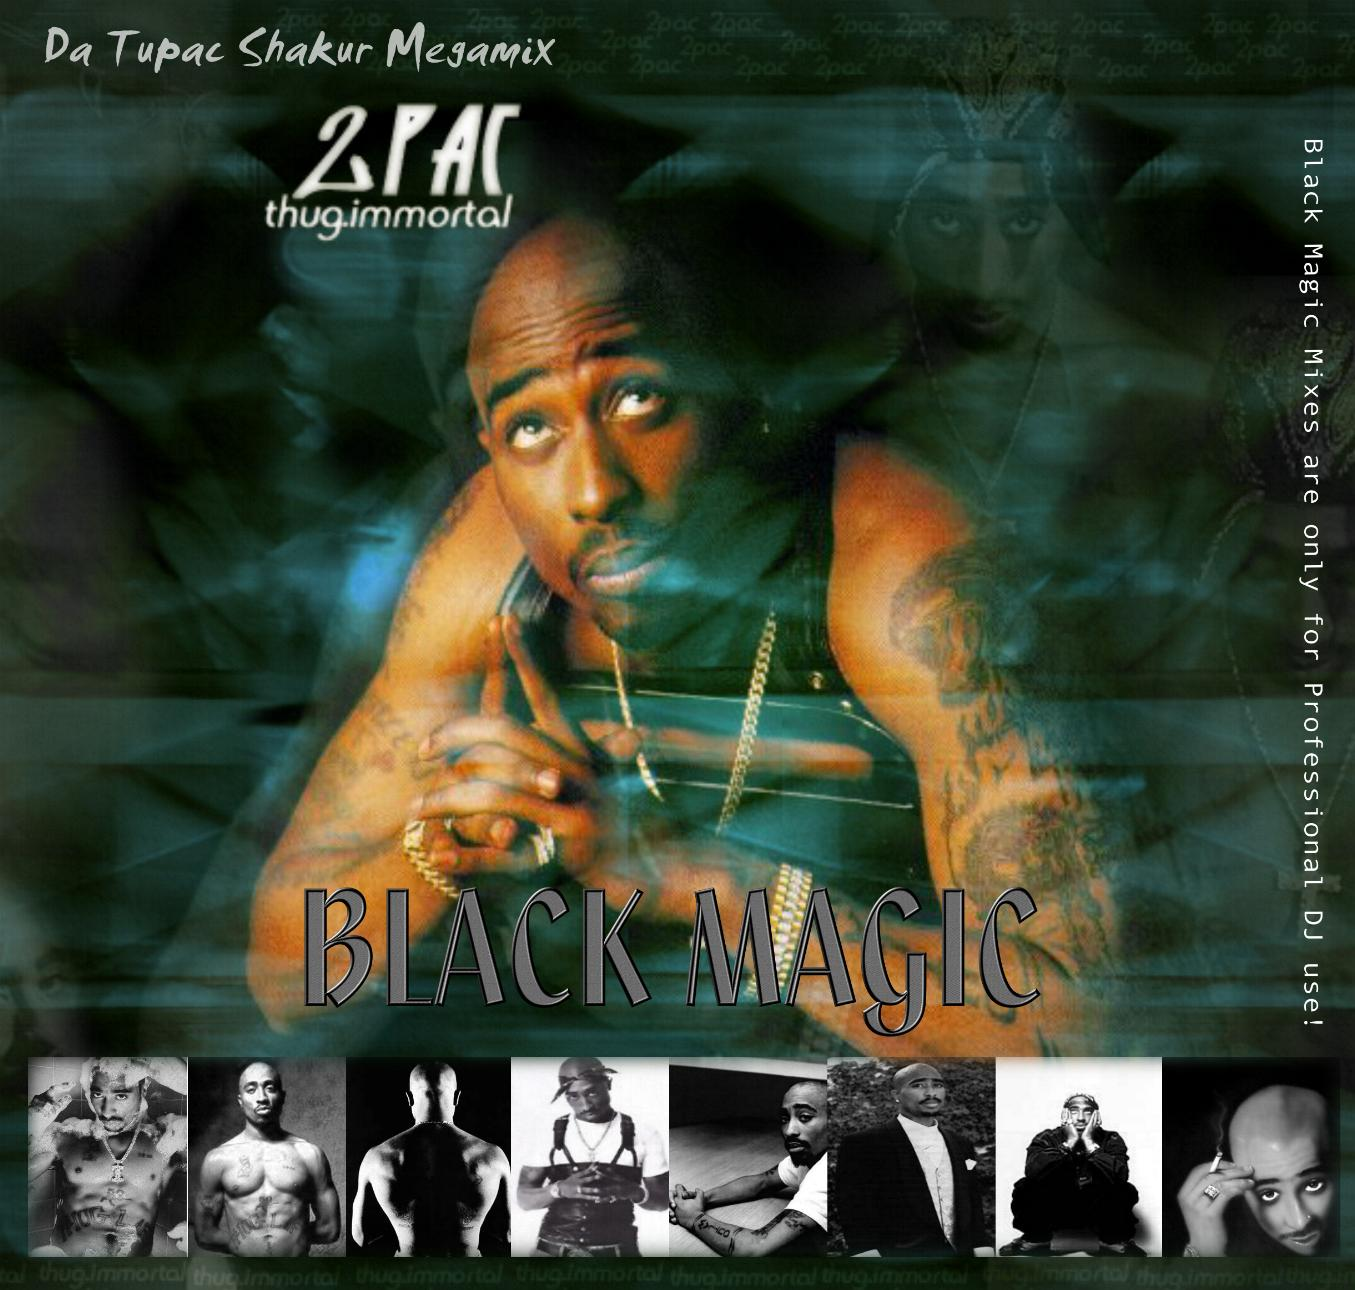 Black Magic - Da Tupac Shakur Megamix